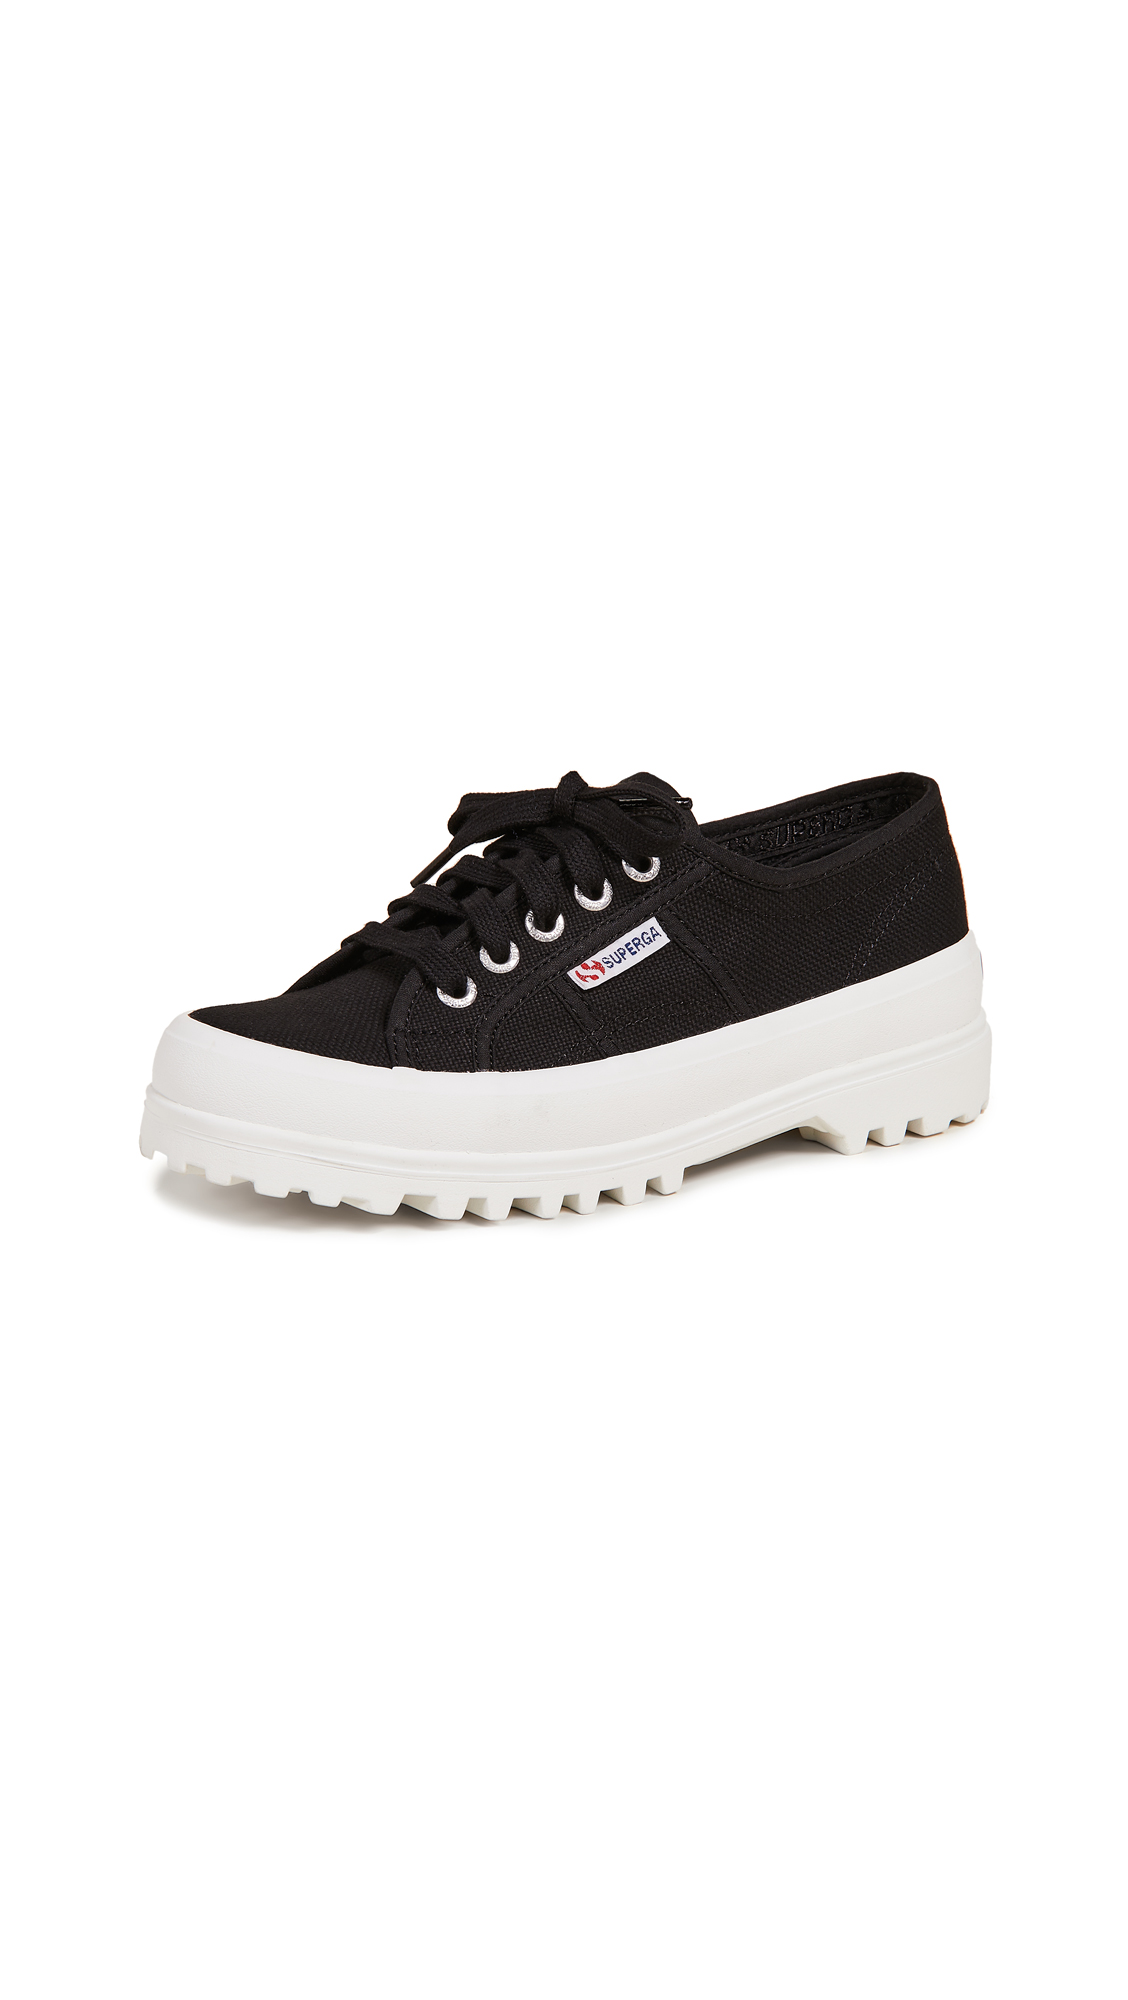 Superga 2555 Cotu Lug Sole Sneakers - Black